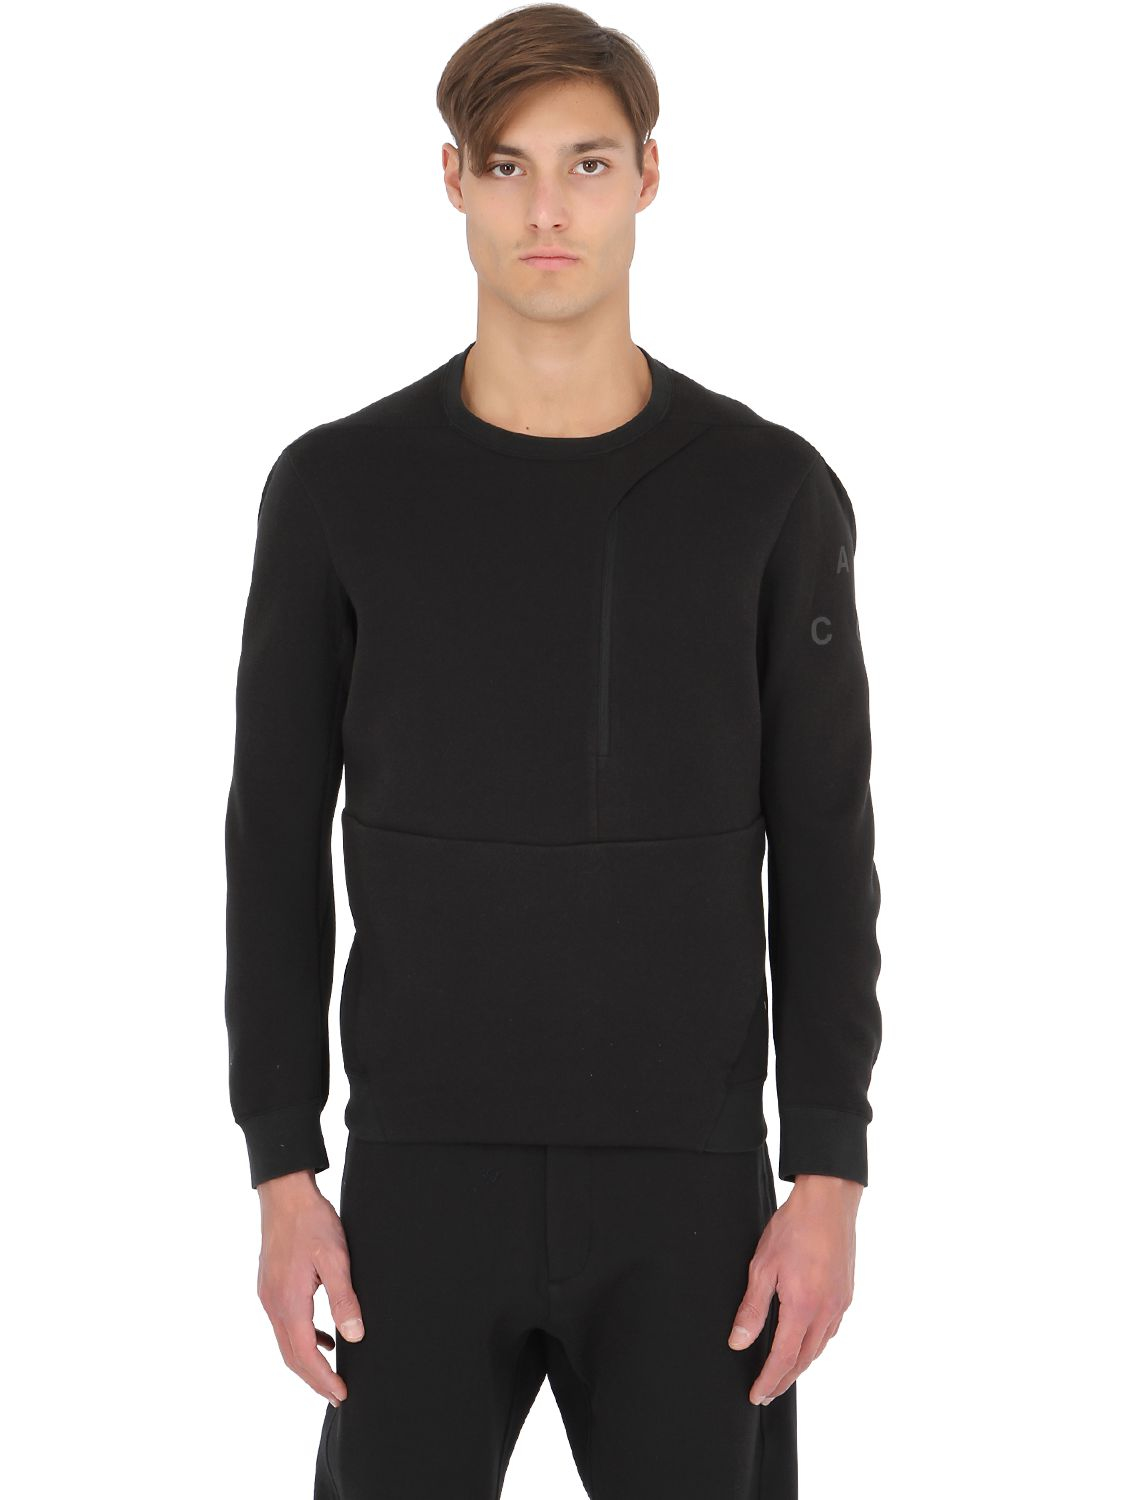 a7be8ed9840614 Lyst Black Sweatshirt Fleece For Nike Men Crewneck In Acg Tech rqwrHTZ0